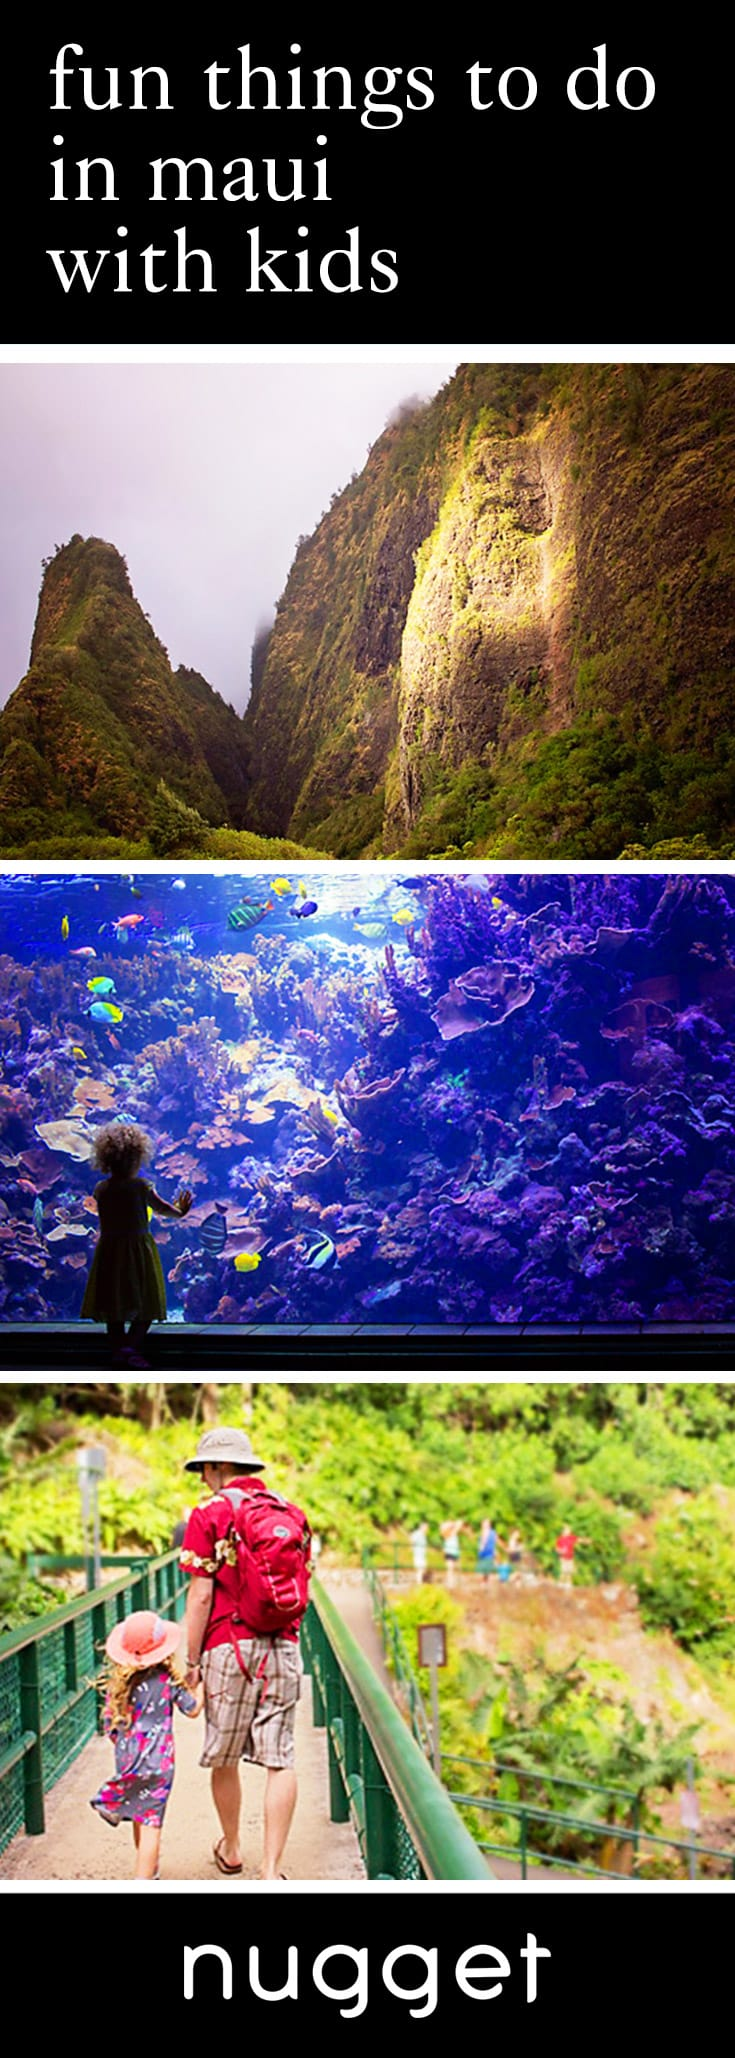 Maui With Kids: Maui Ocean Center and Iao Valley Hike